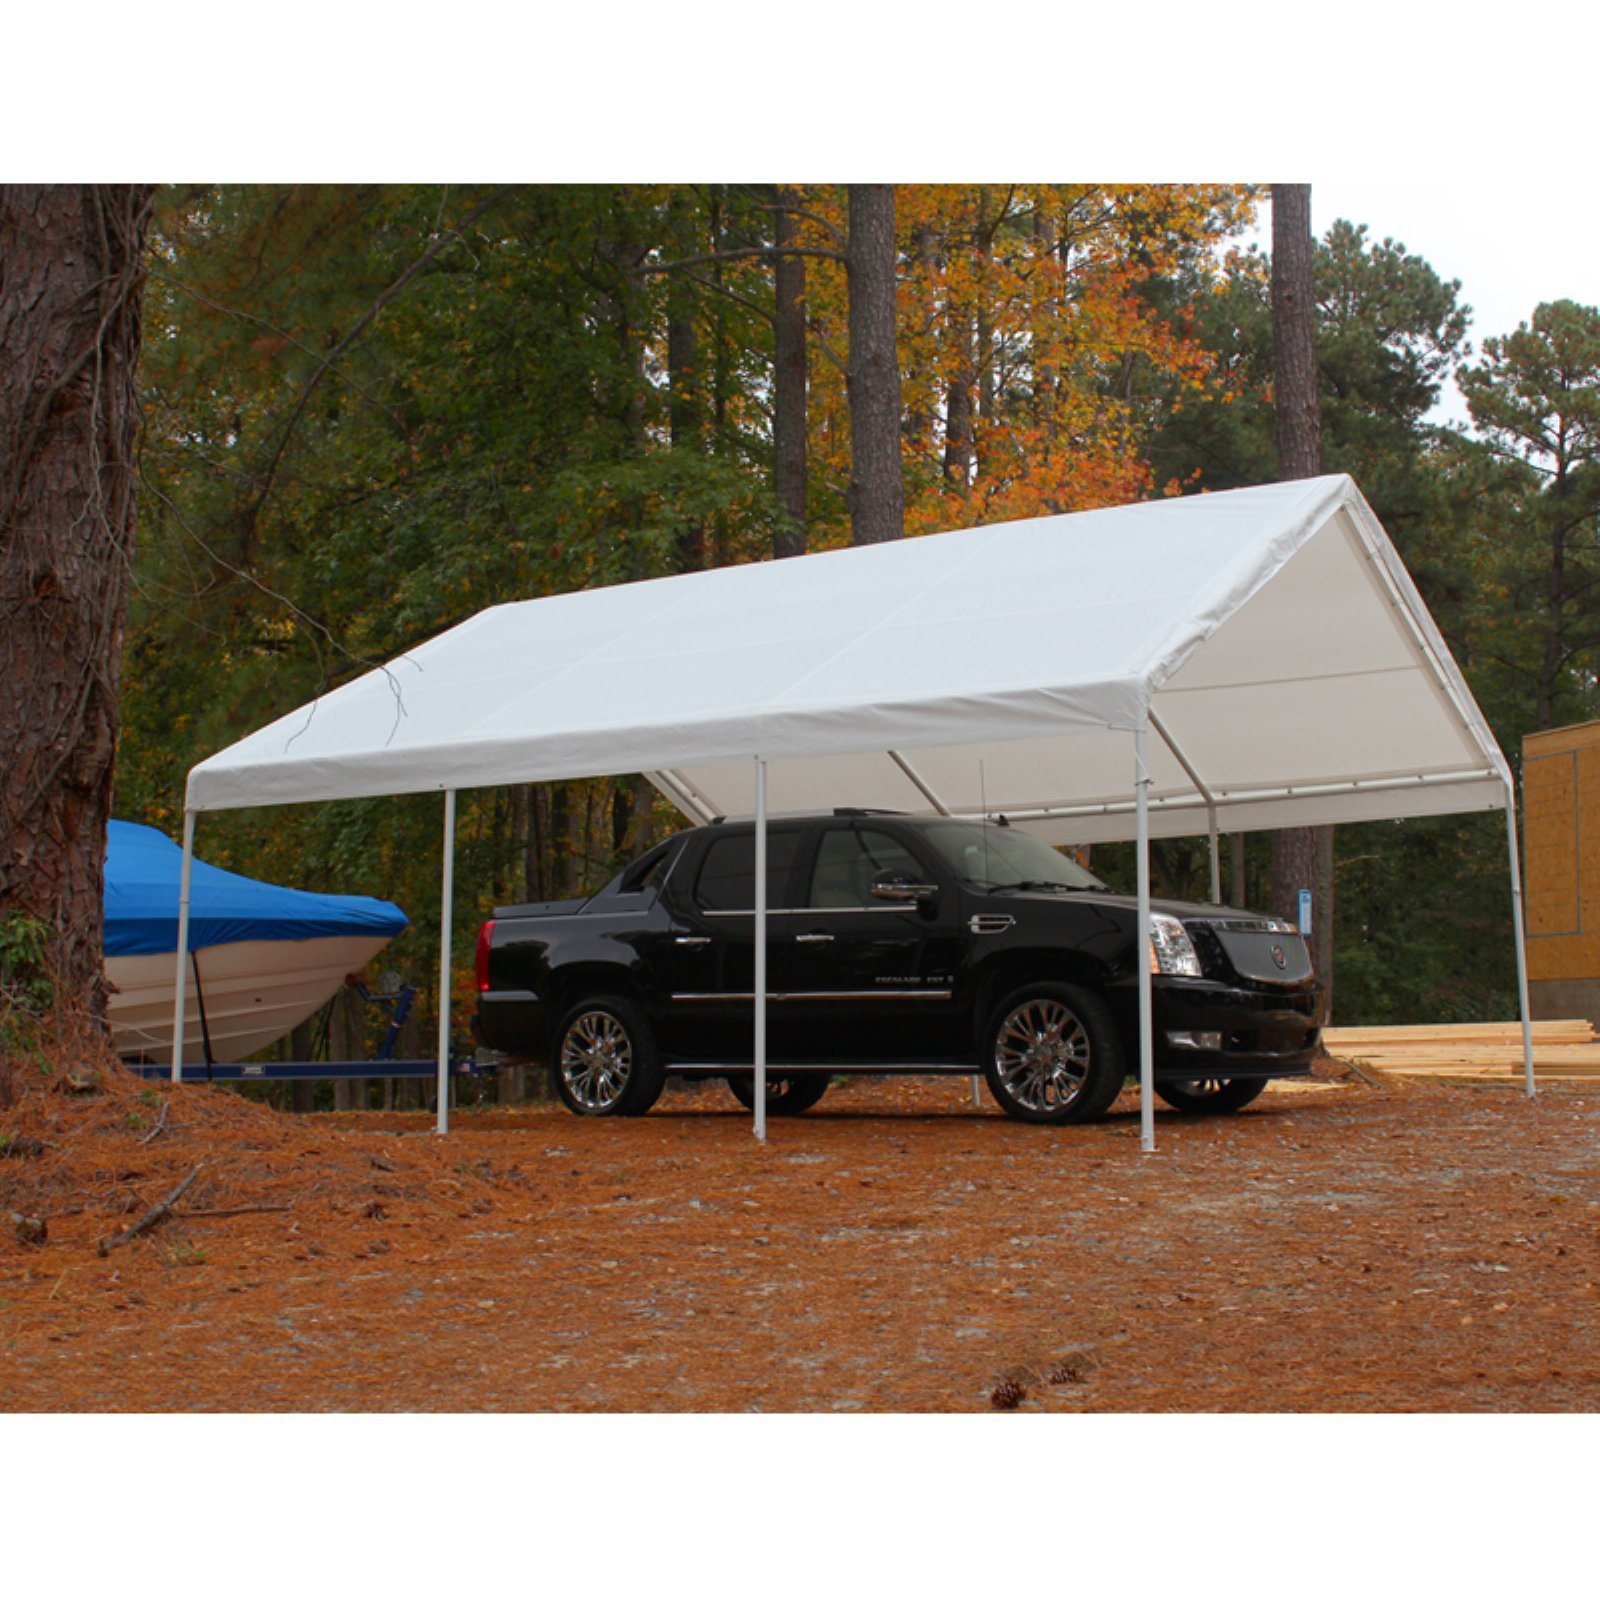 King Canopy Hercules Canopy Carport 18 x 20 ft. by PIC America Ltd